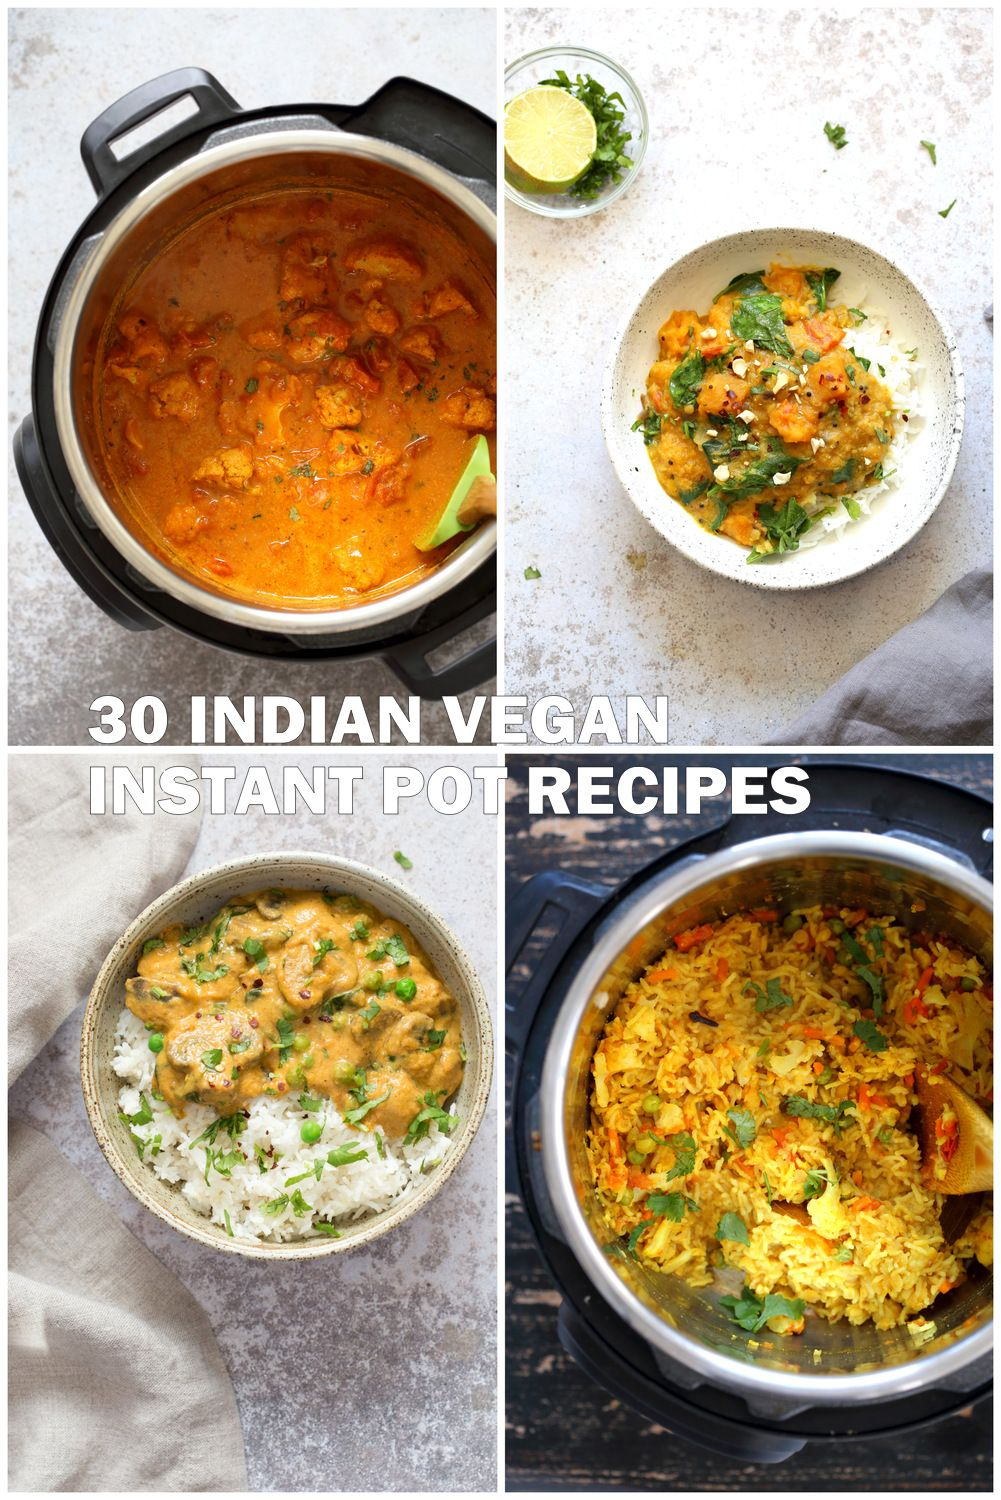 30 Instant Pot Vegan Indian Recipes Vegan Richa Vegan Indian Recipes Vegetarian Instant Pot Vegetarian Recipes Healthy